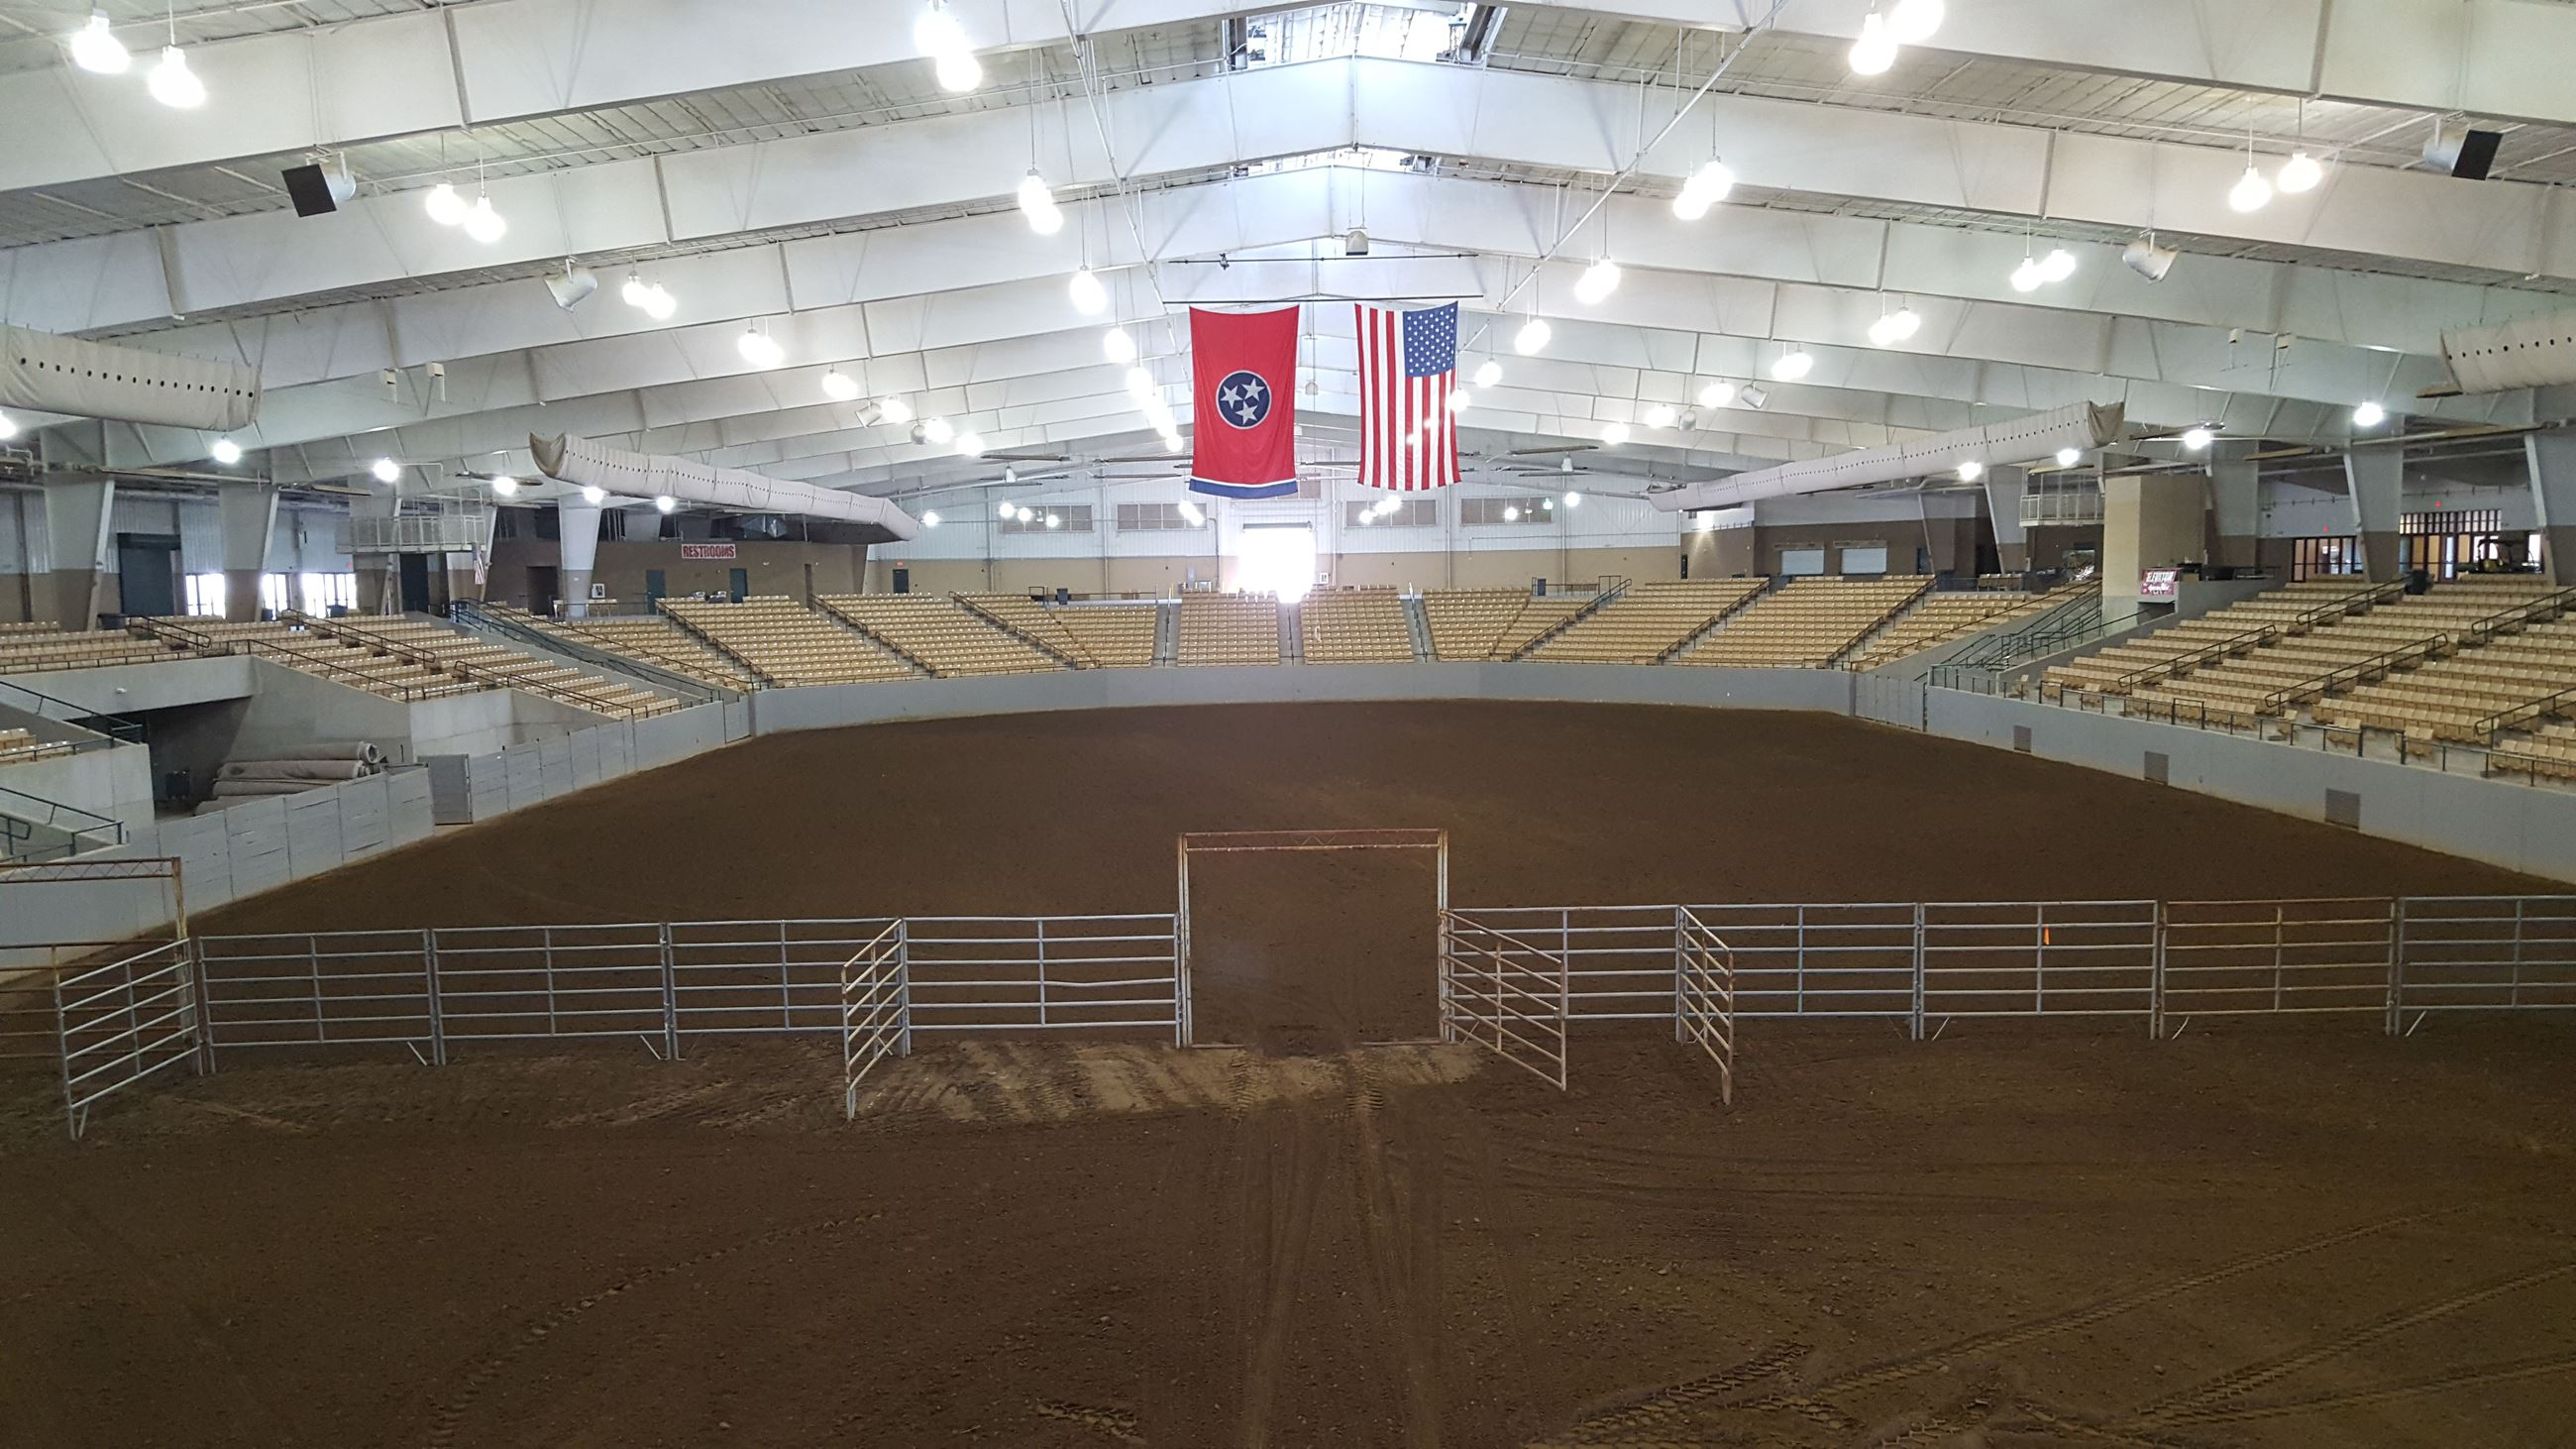 Main Arena setup for Horse Show